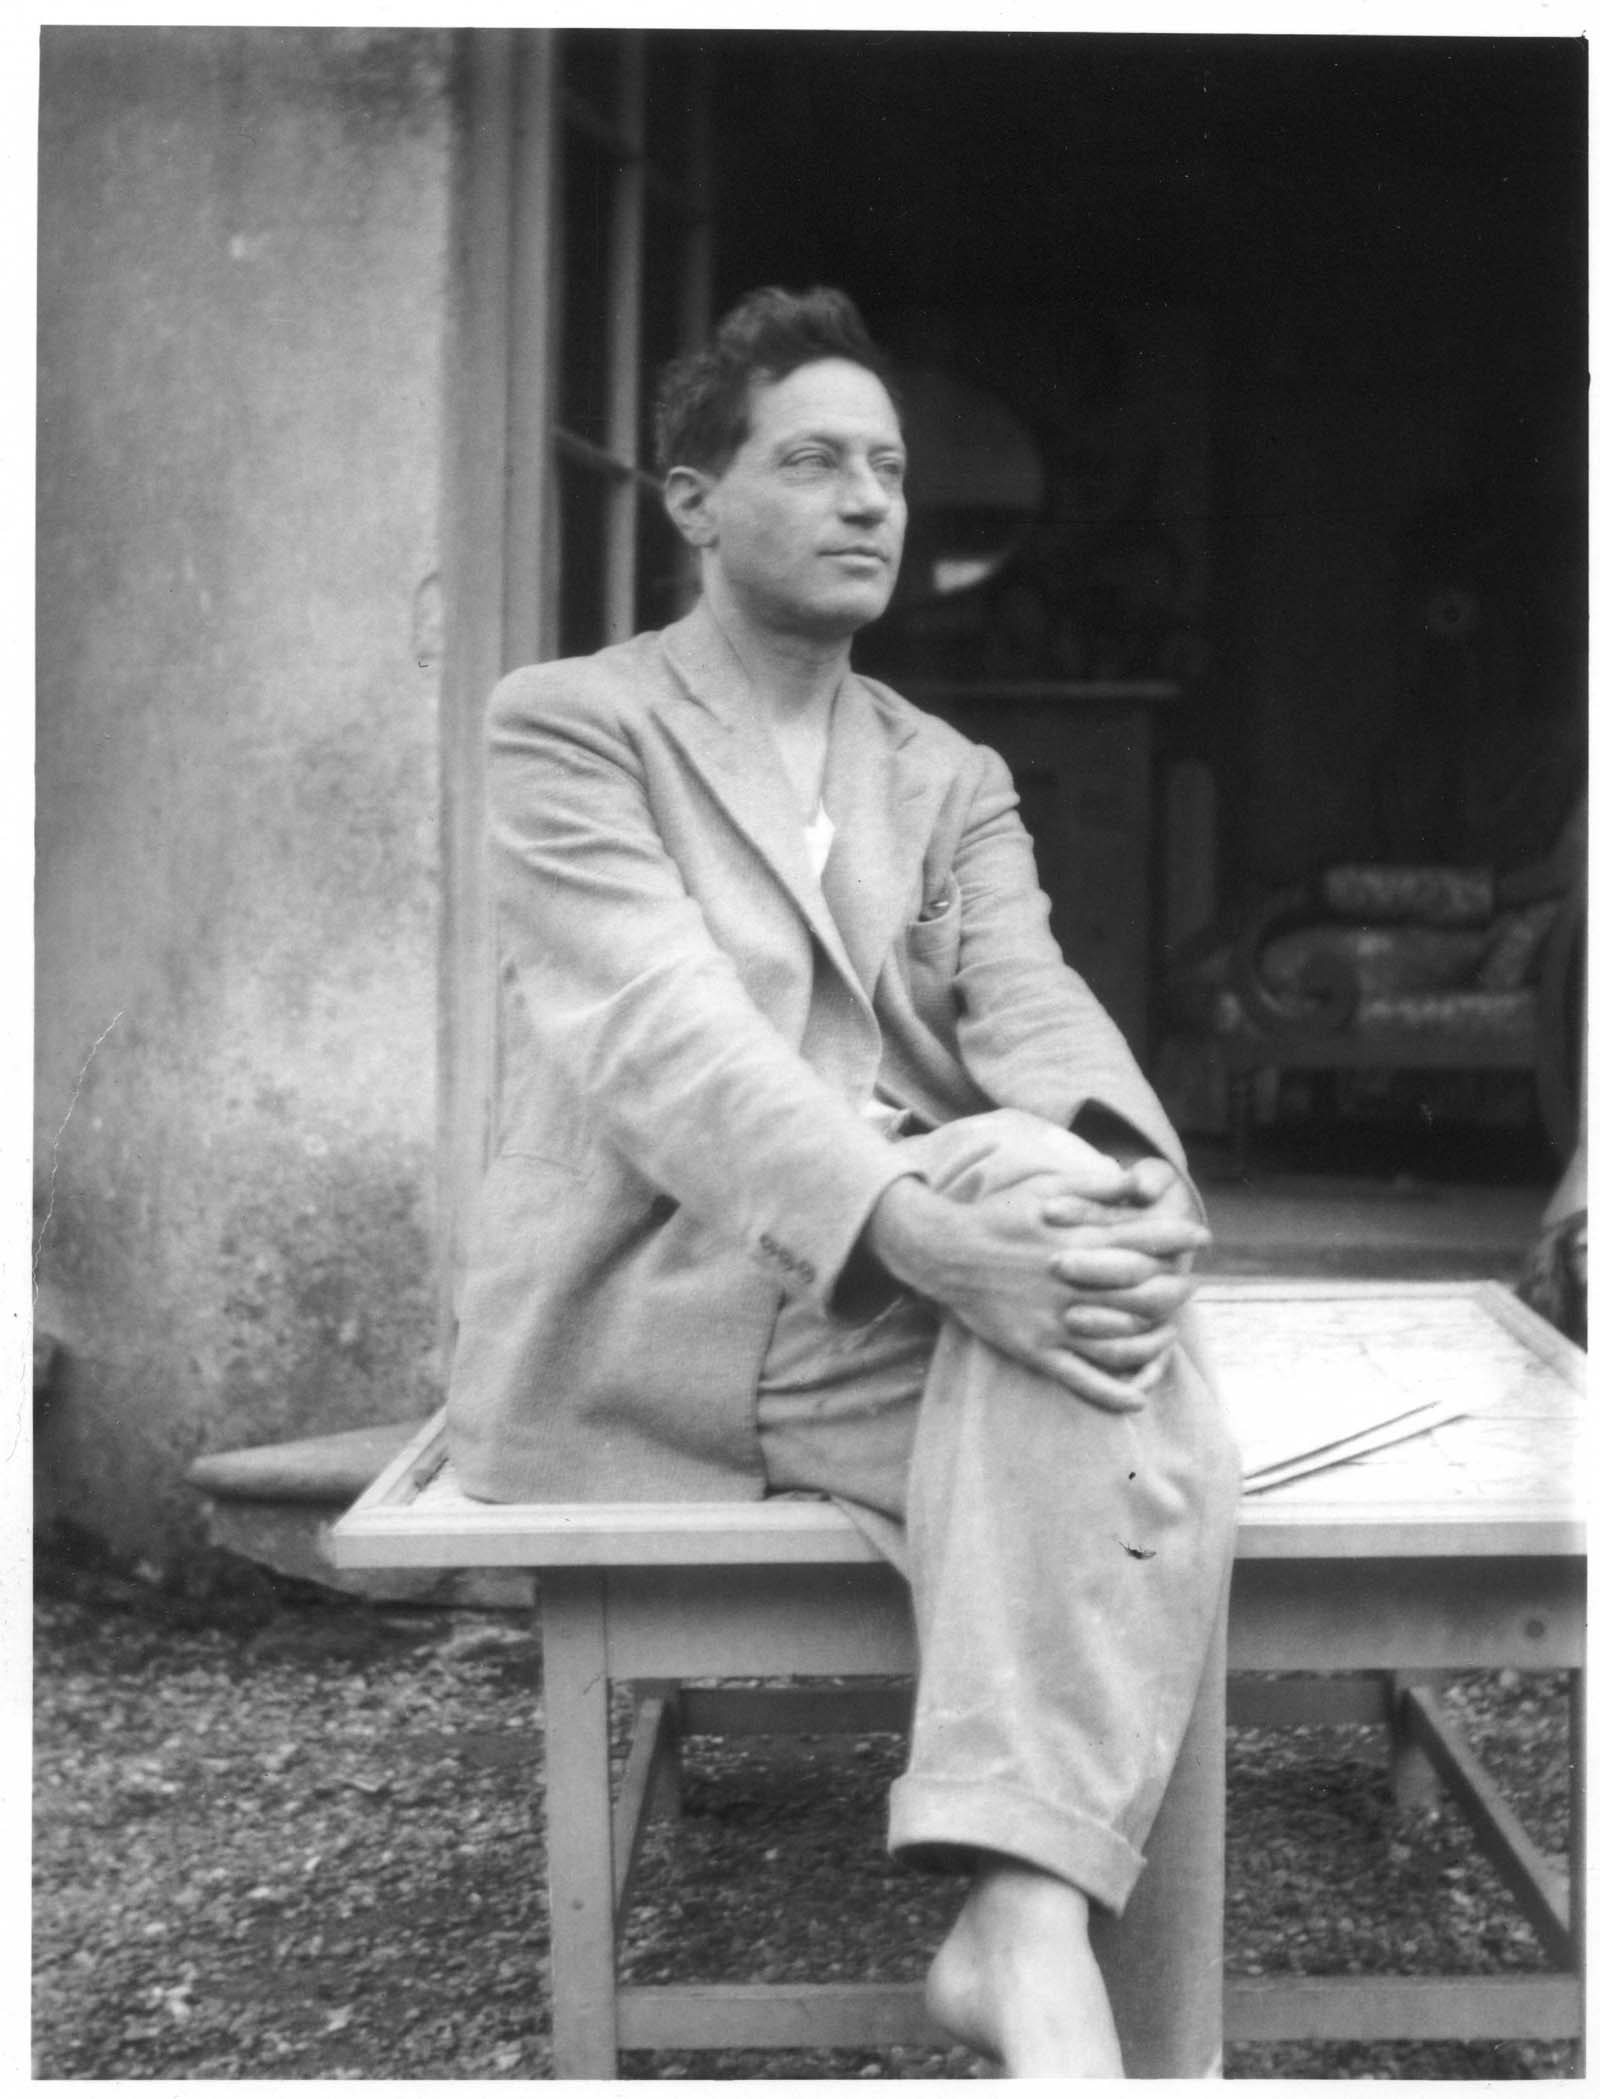 black and white photo of a man in a linenen suit with his hands clasped across his crossed legs